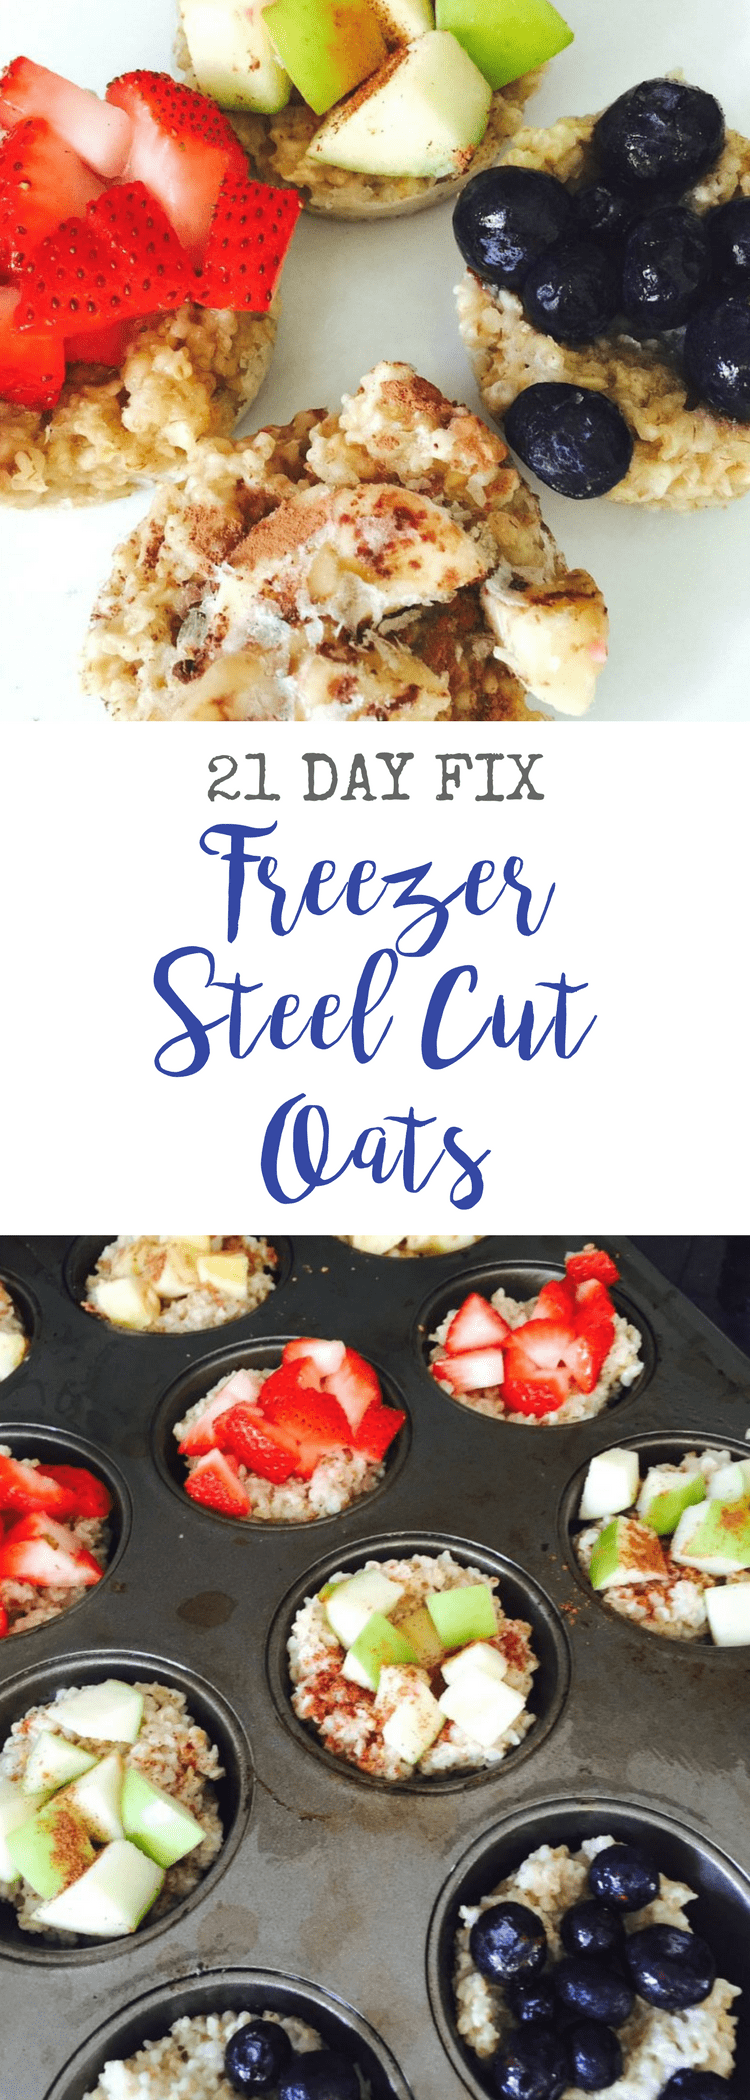 Freezer Steel Cut Oats | Confessions of a Fit Foodie